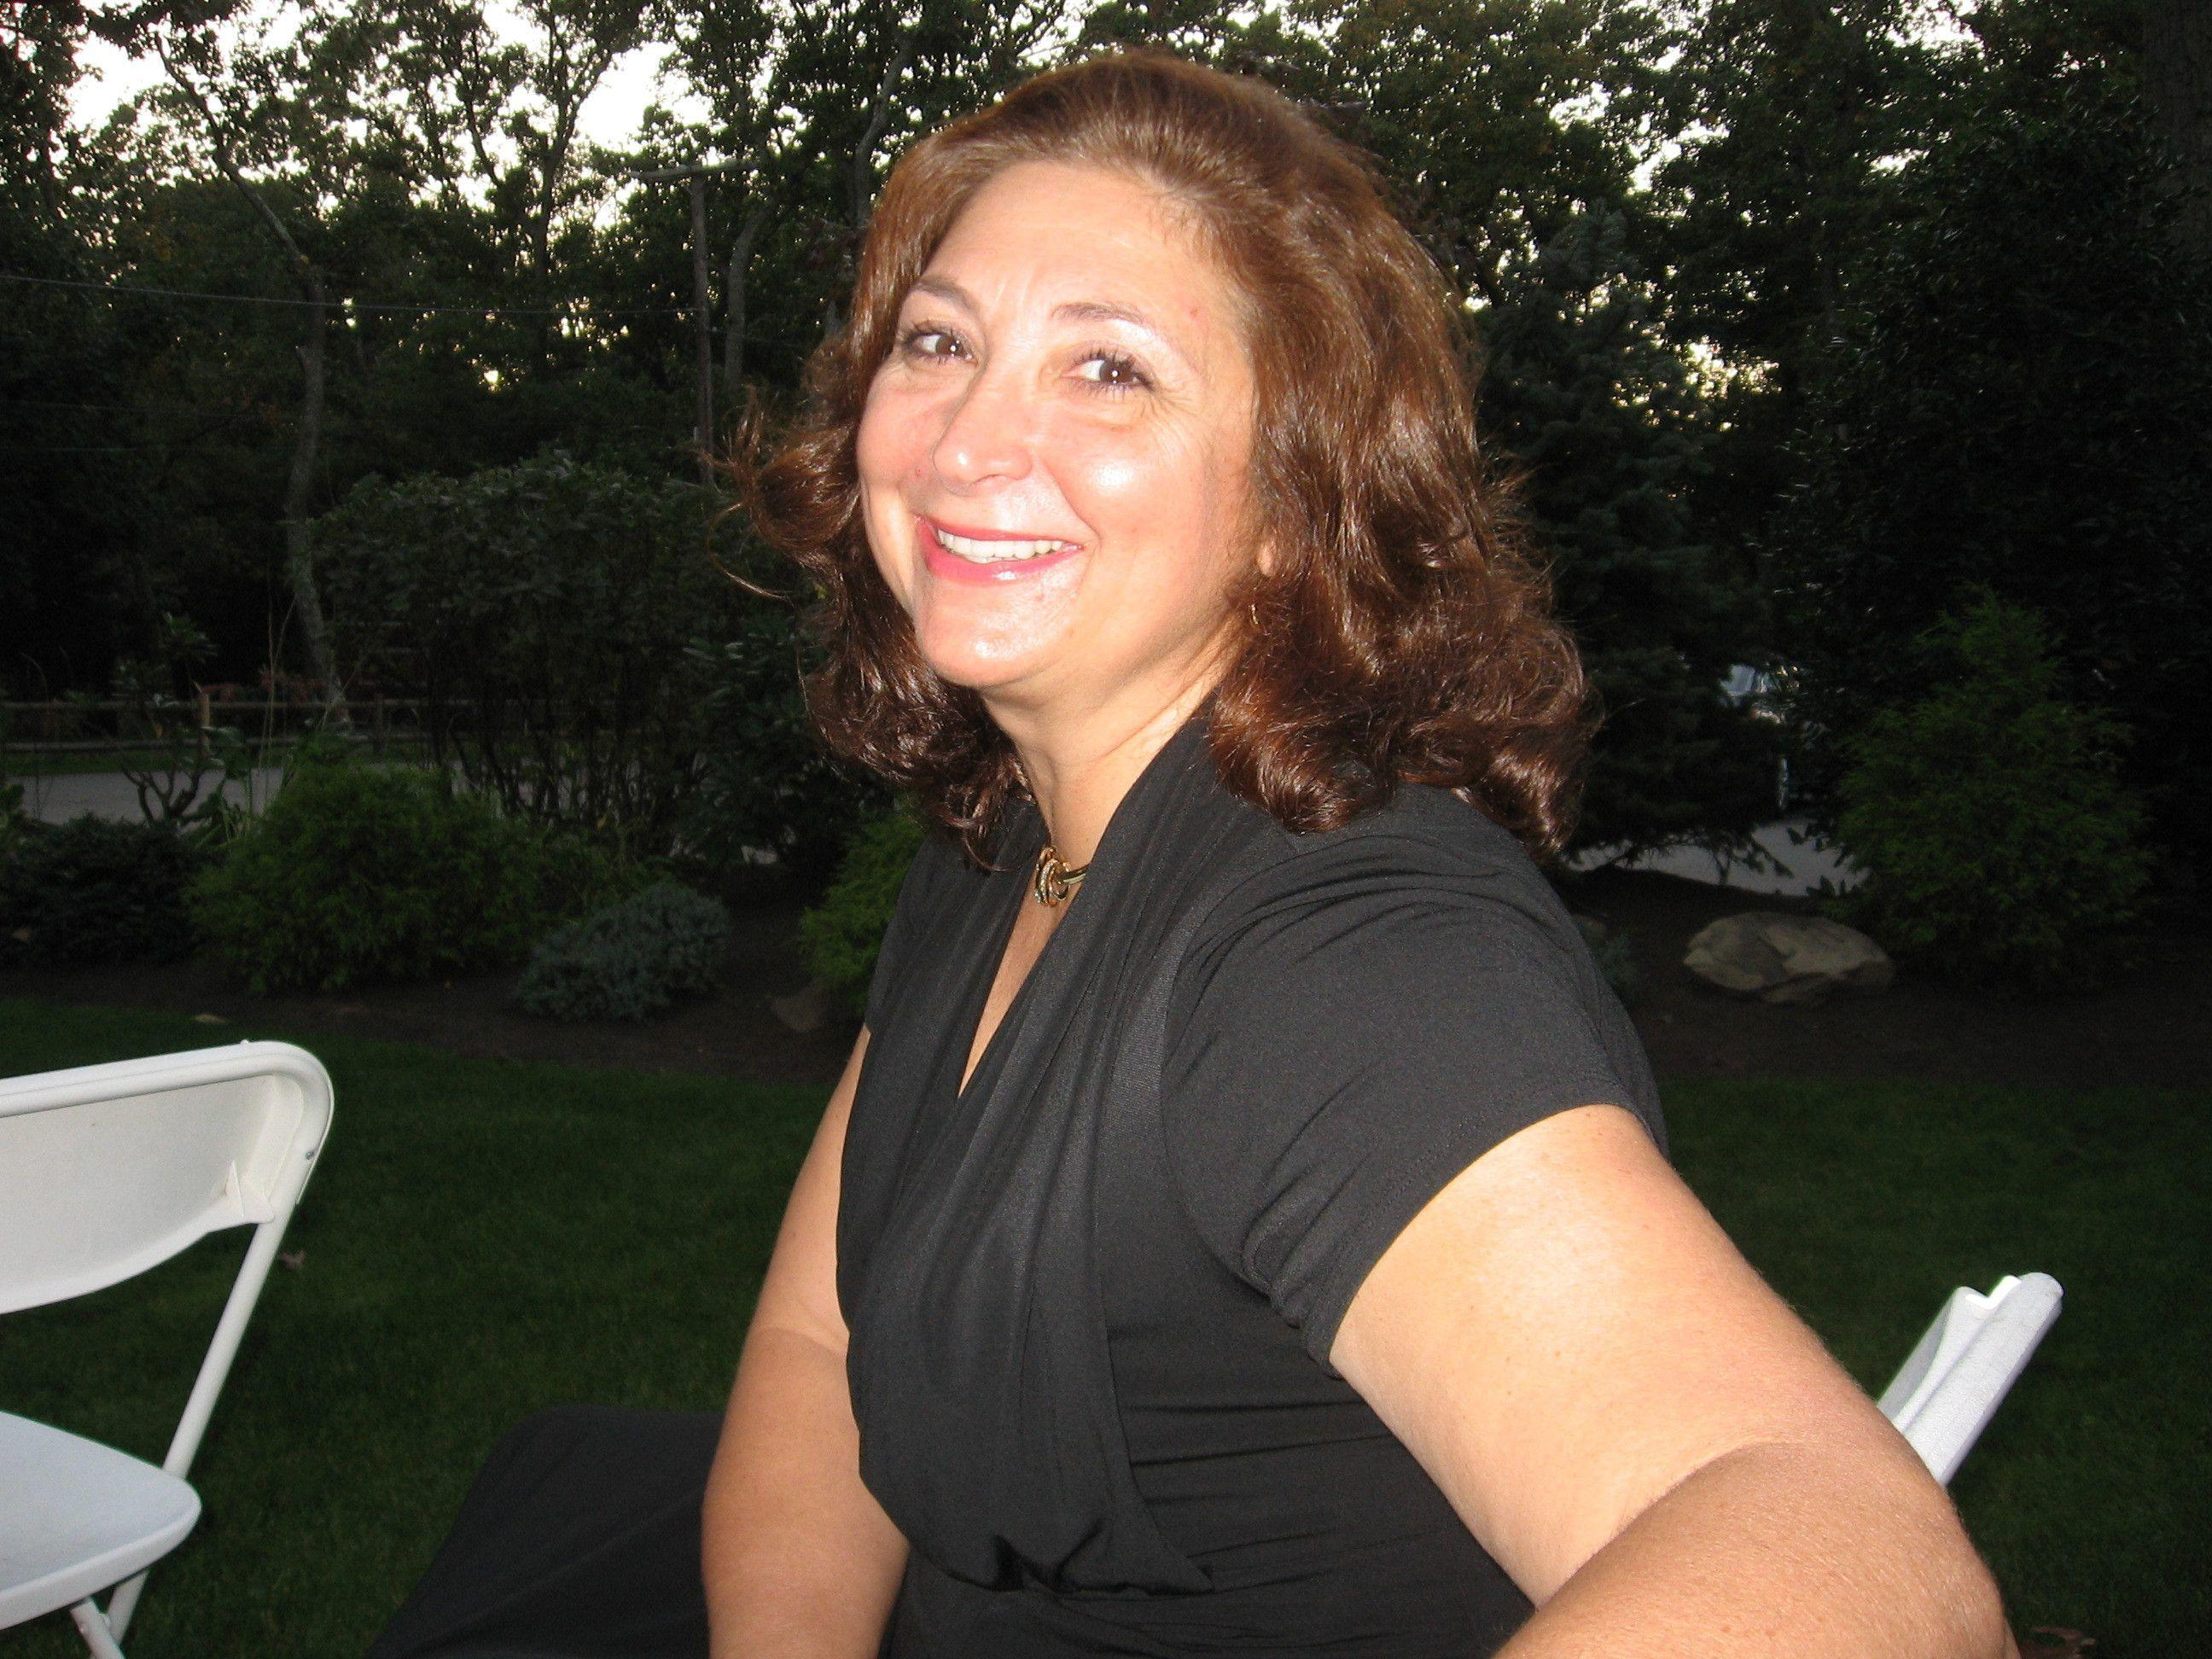 meet leland singles Search for local senior singles  i'm a sweet, sincere southern lady who thoroughly enjoys meeting new people and treasuring the  meet senior singles in your.